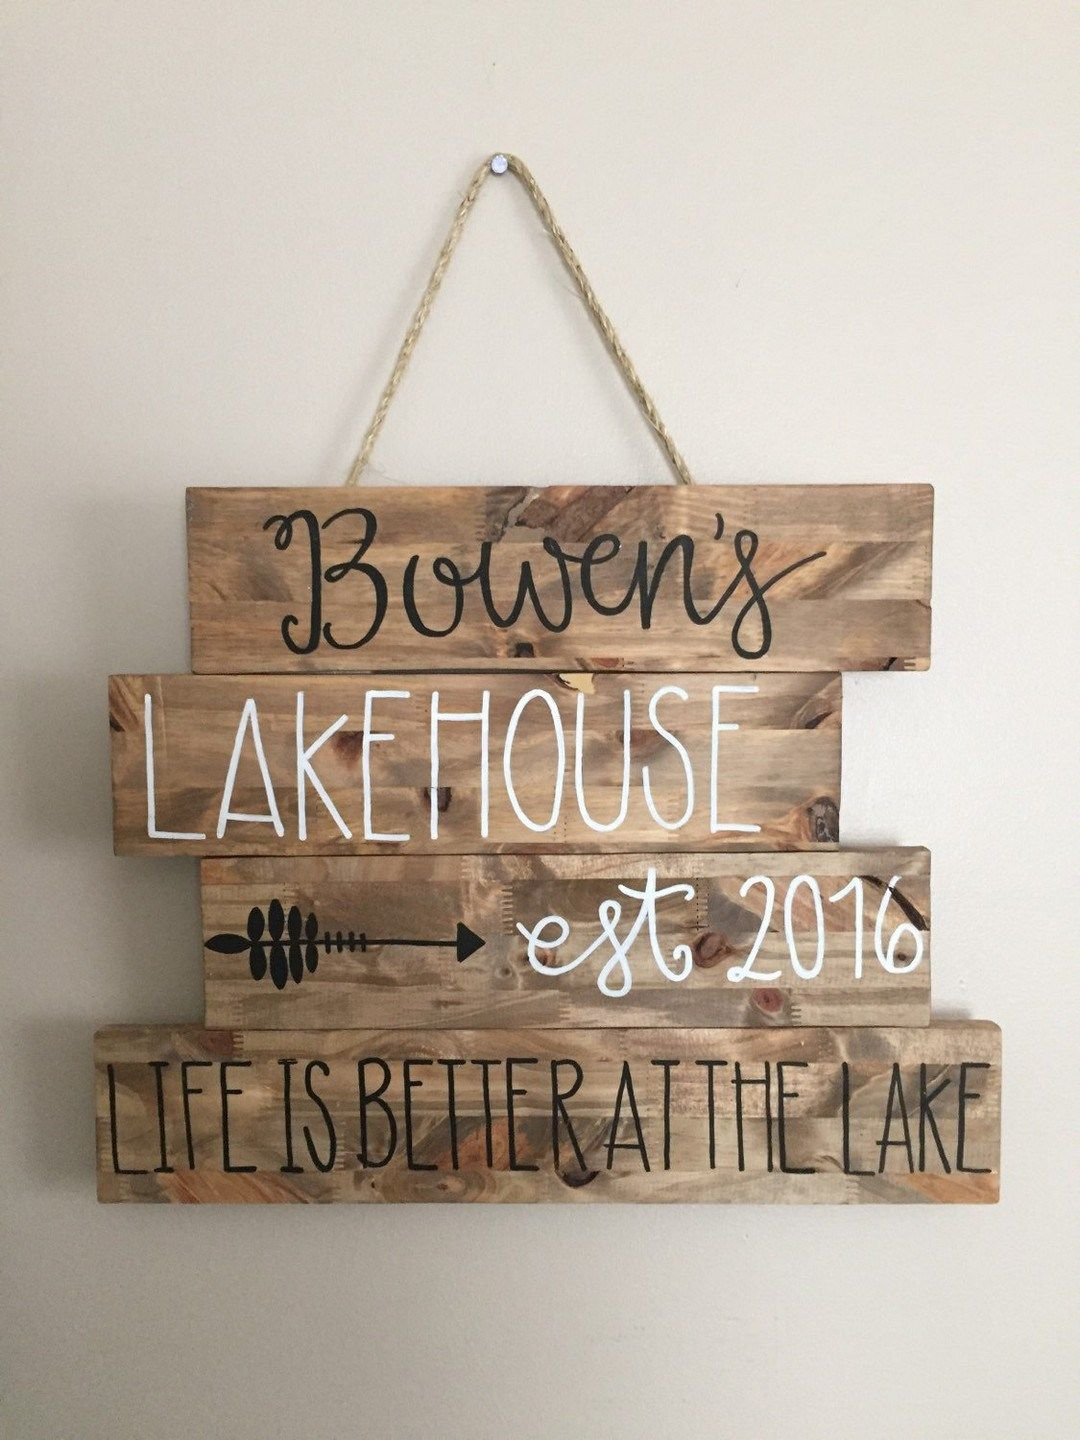 99 Rustic Lake House Decorating Ideas 54 99architecture Lakehouse Decor Lake House Signs Lake House